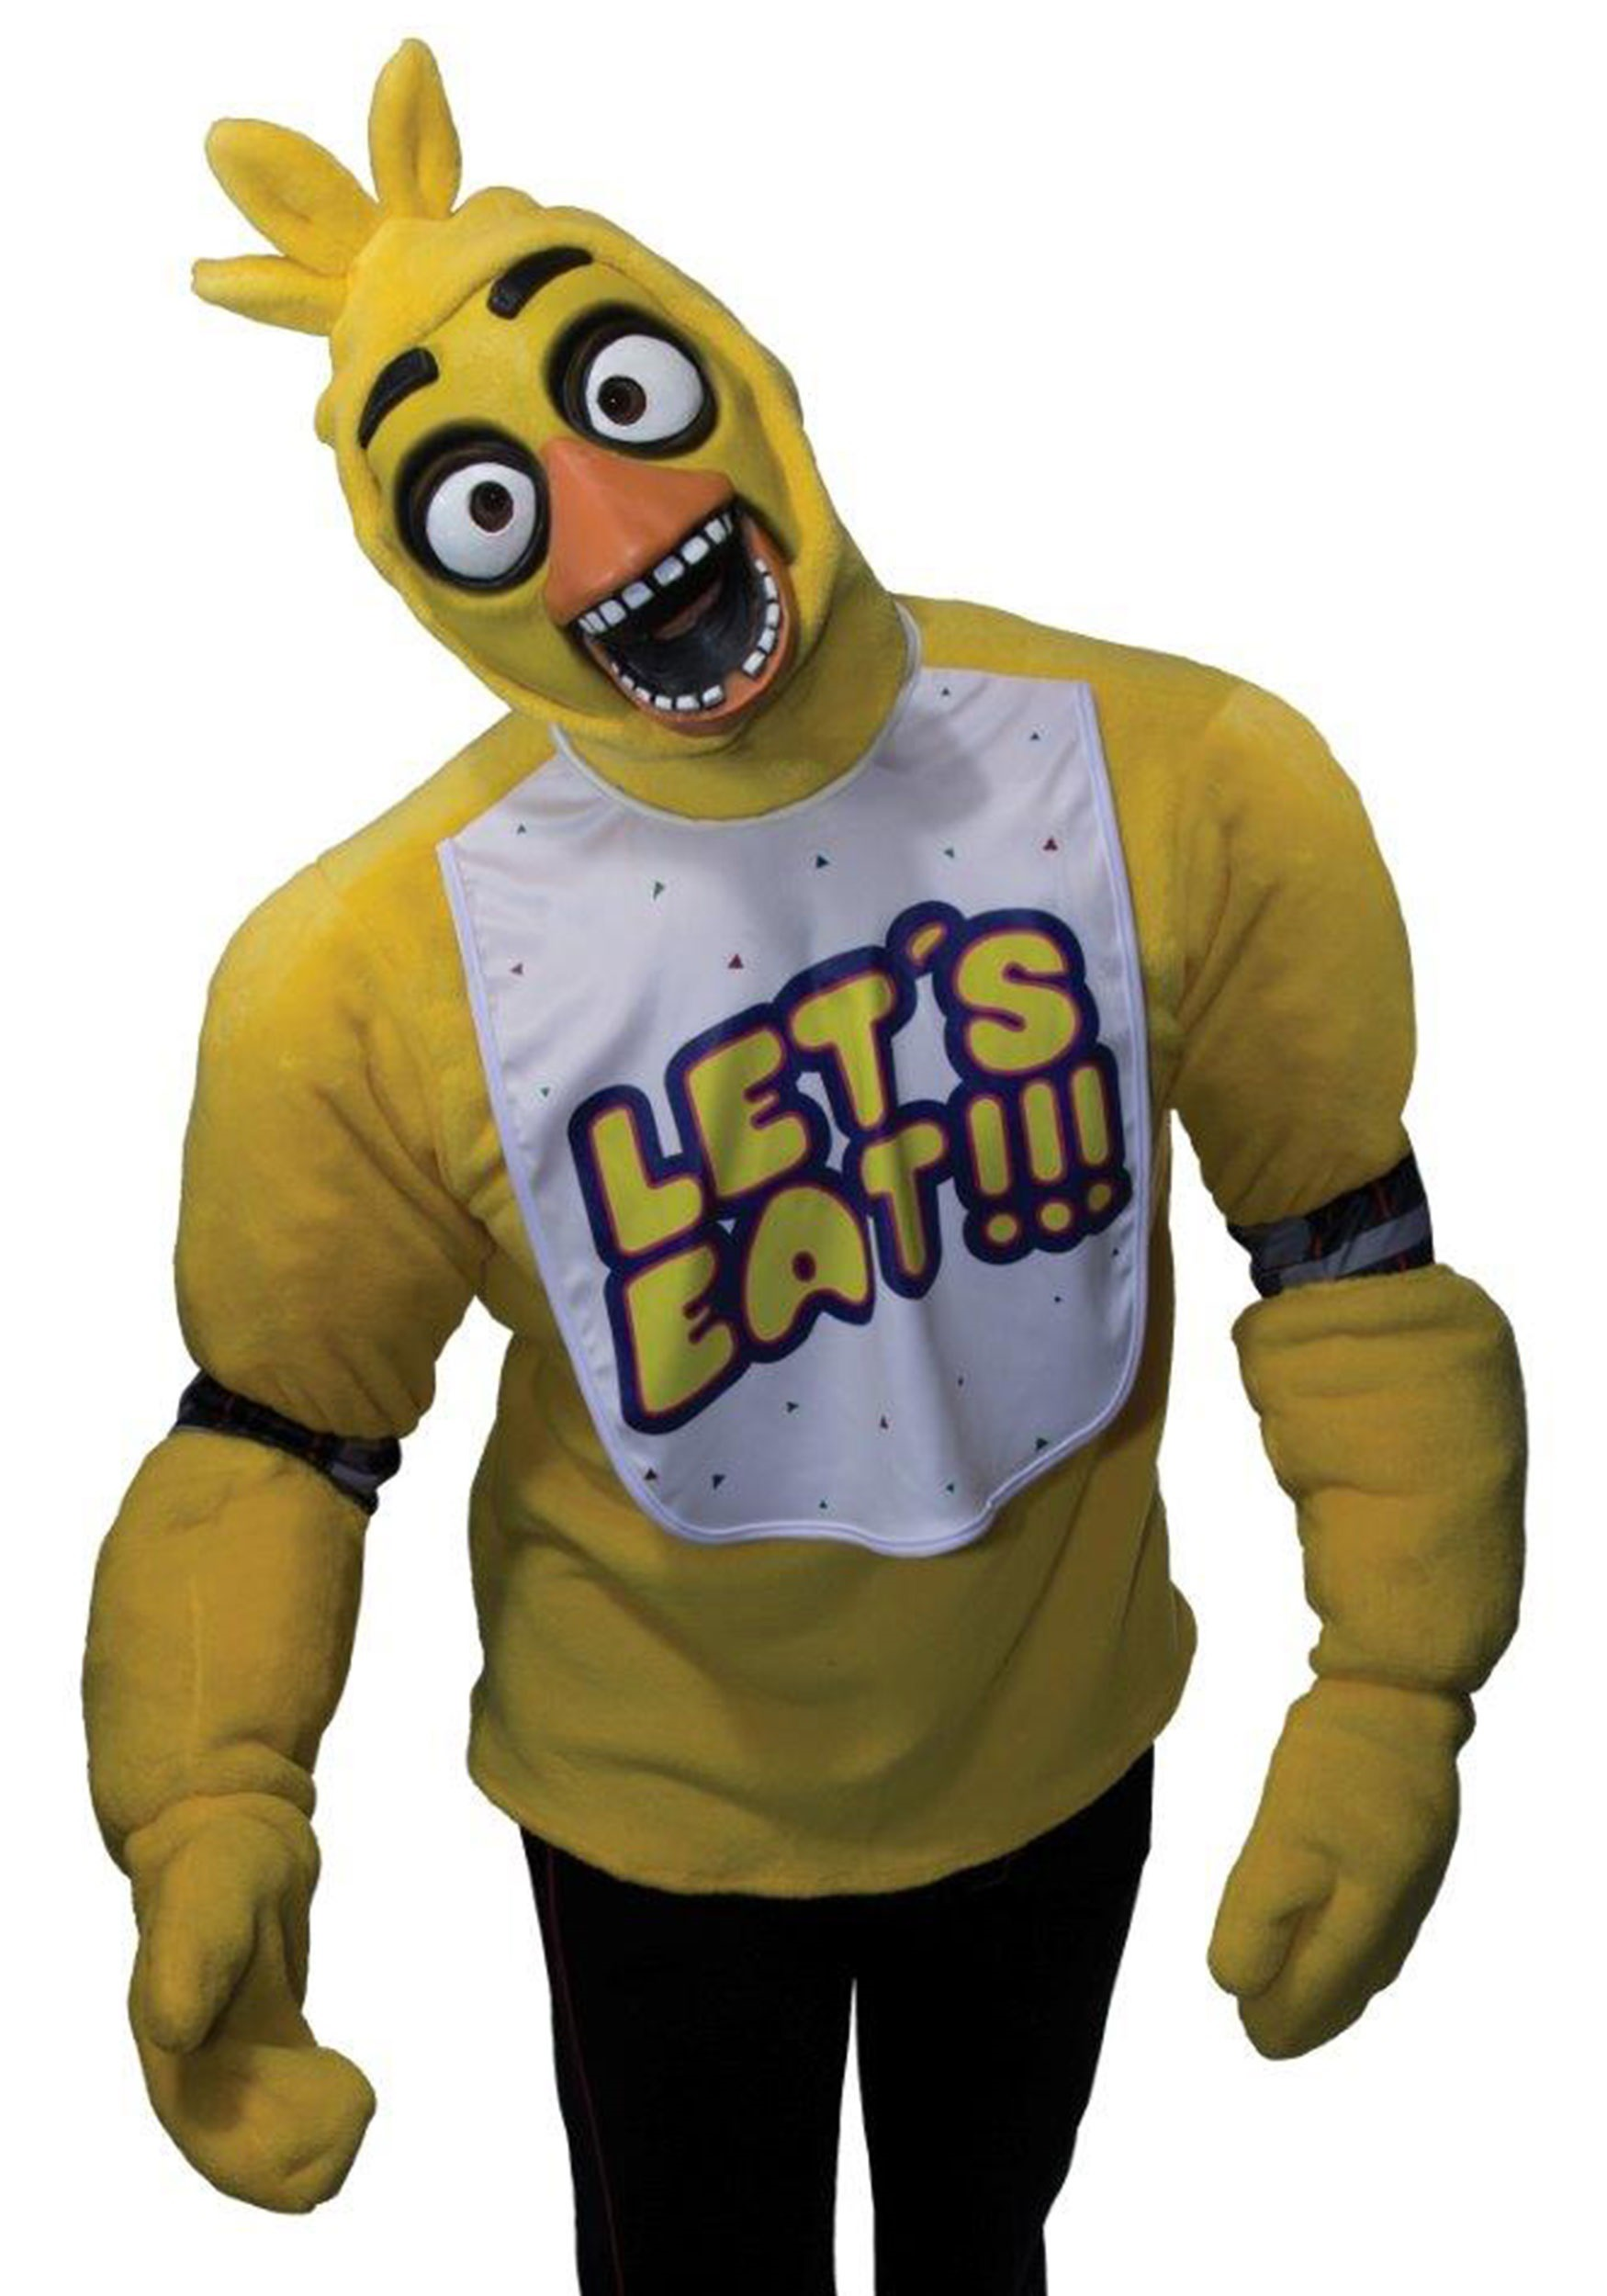 Fnaf bonnie costume for sale - Fnaf Adult Chica Costume